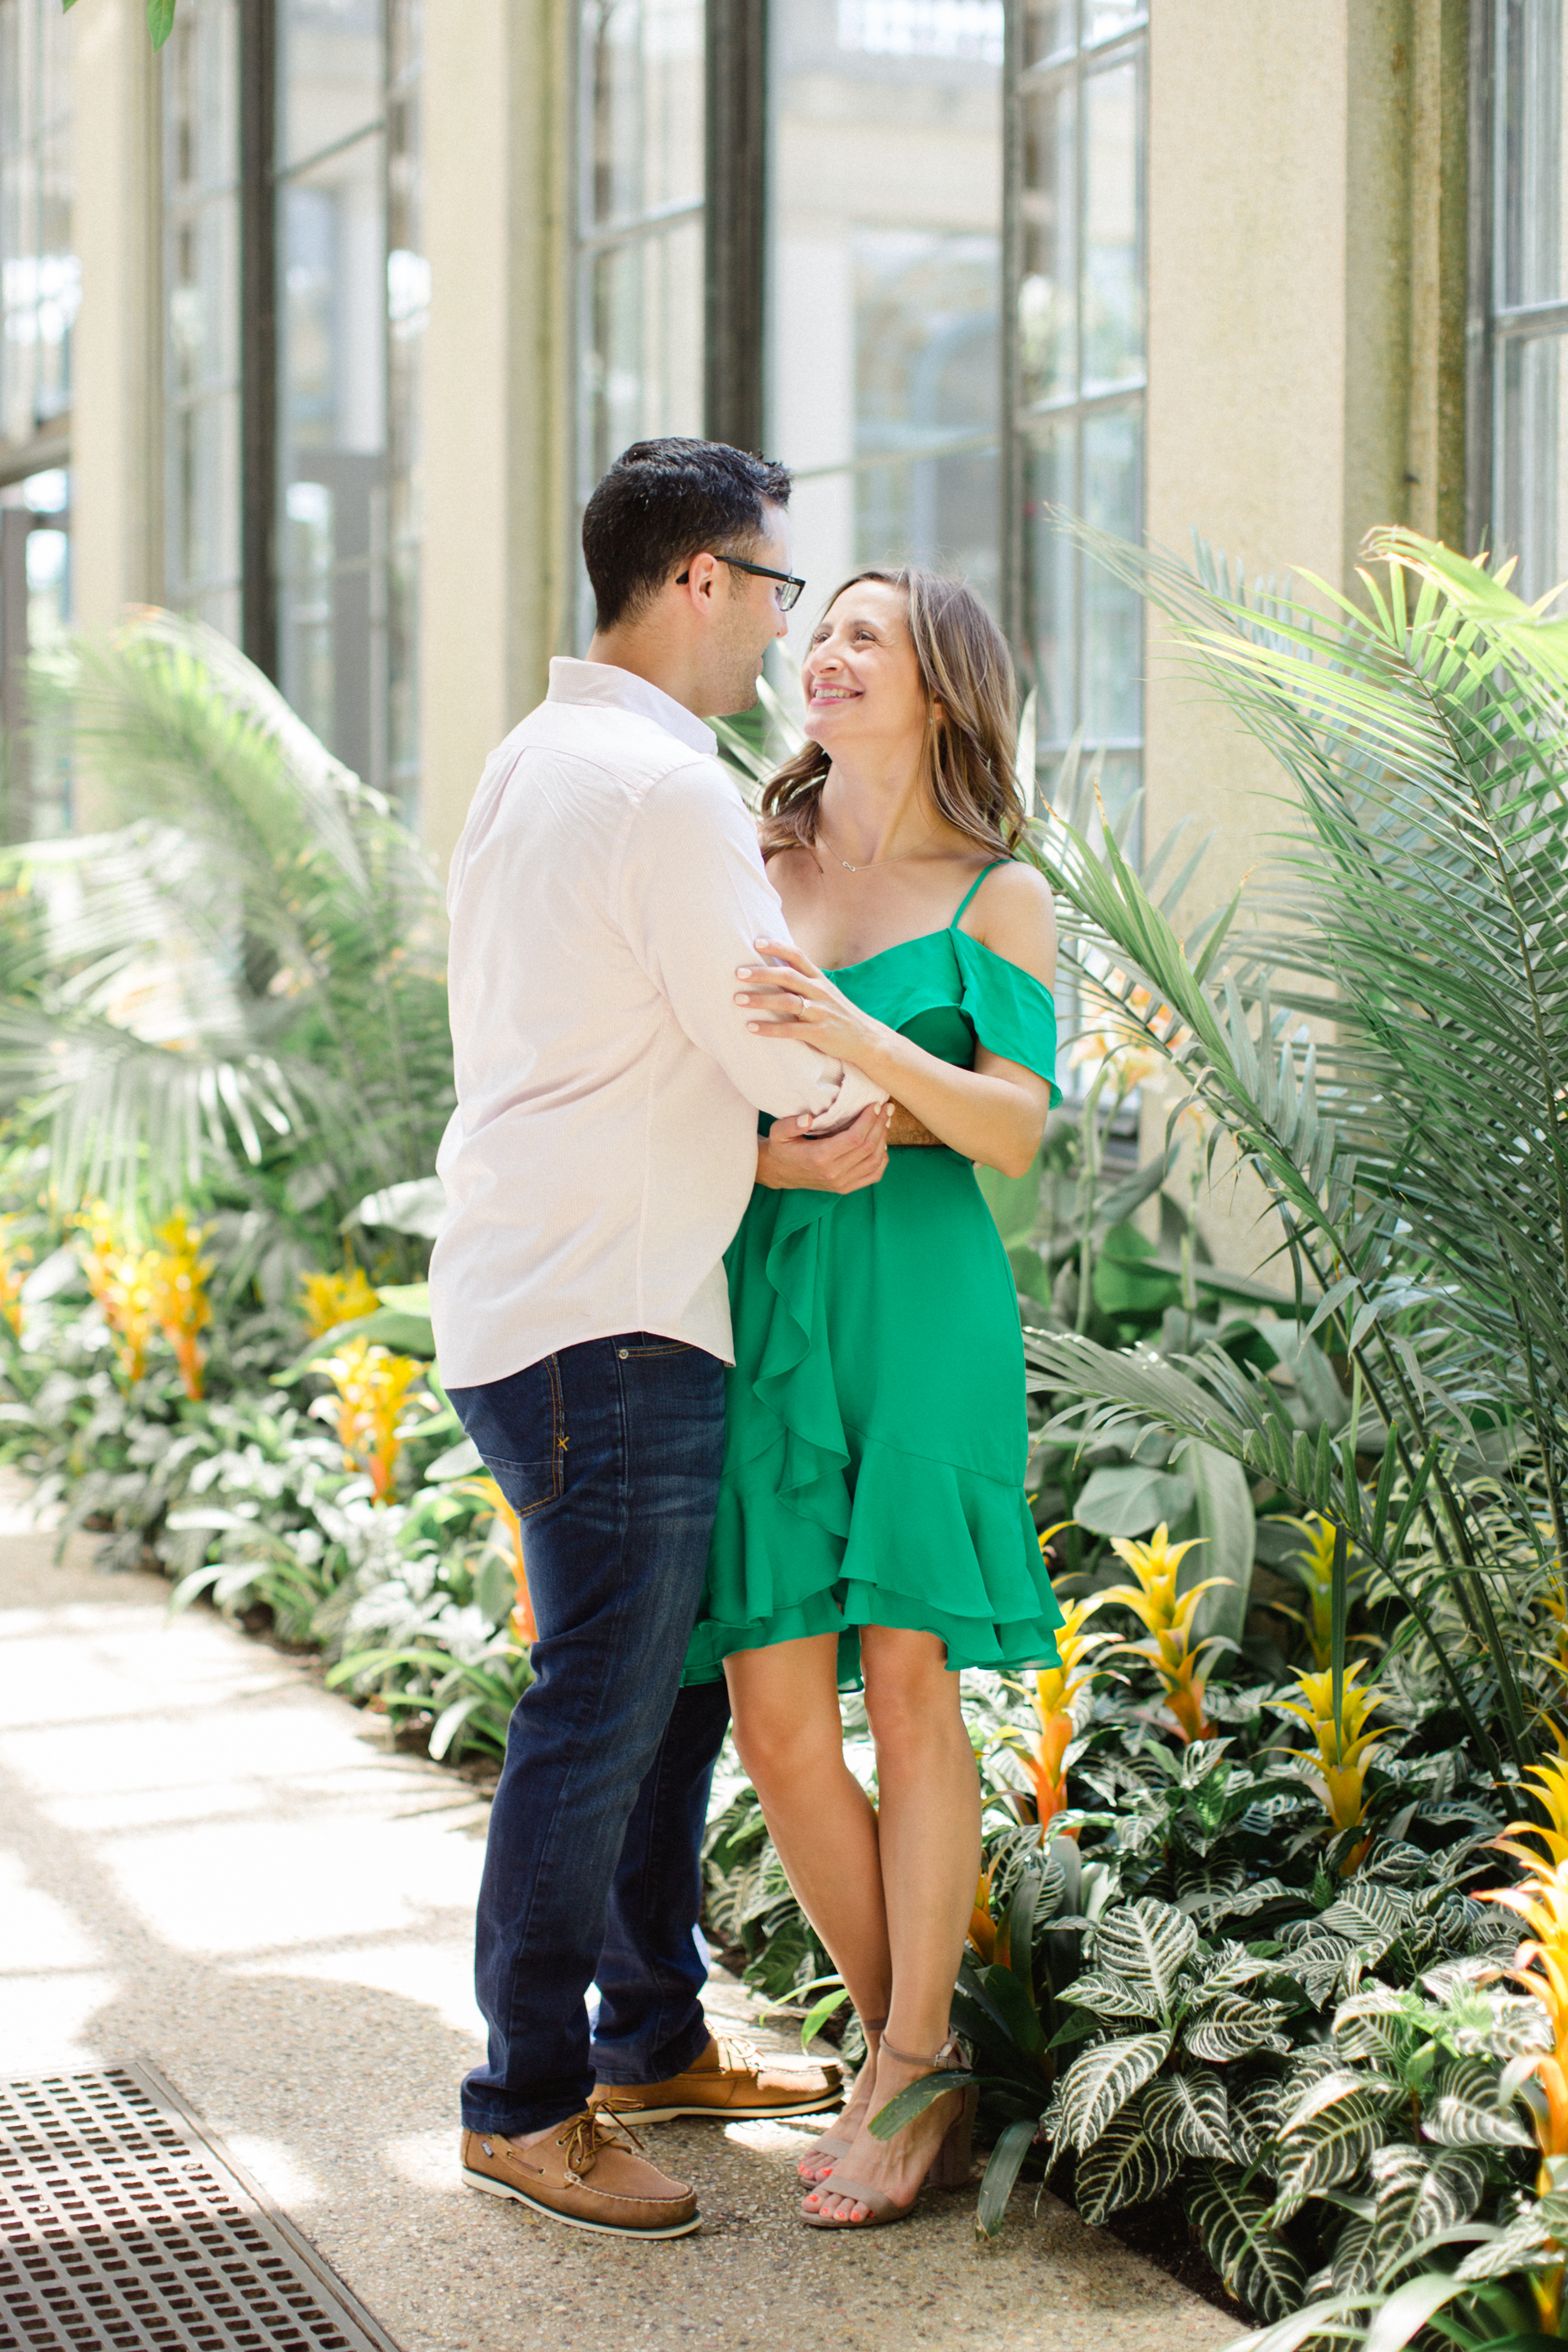 Longwood Gardens Engagement Session Photos_JDP-50.jpg